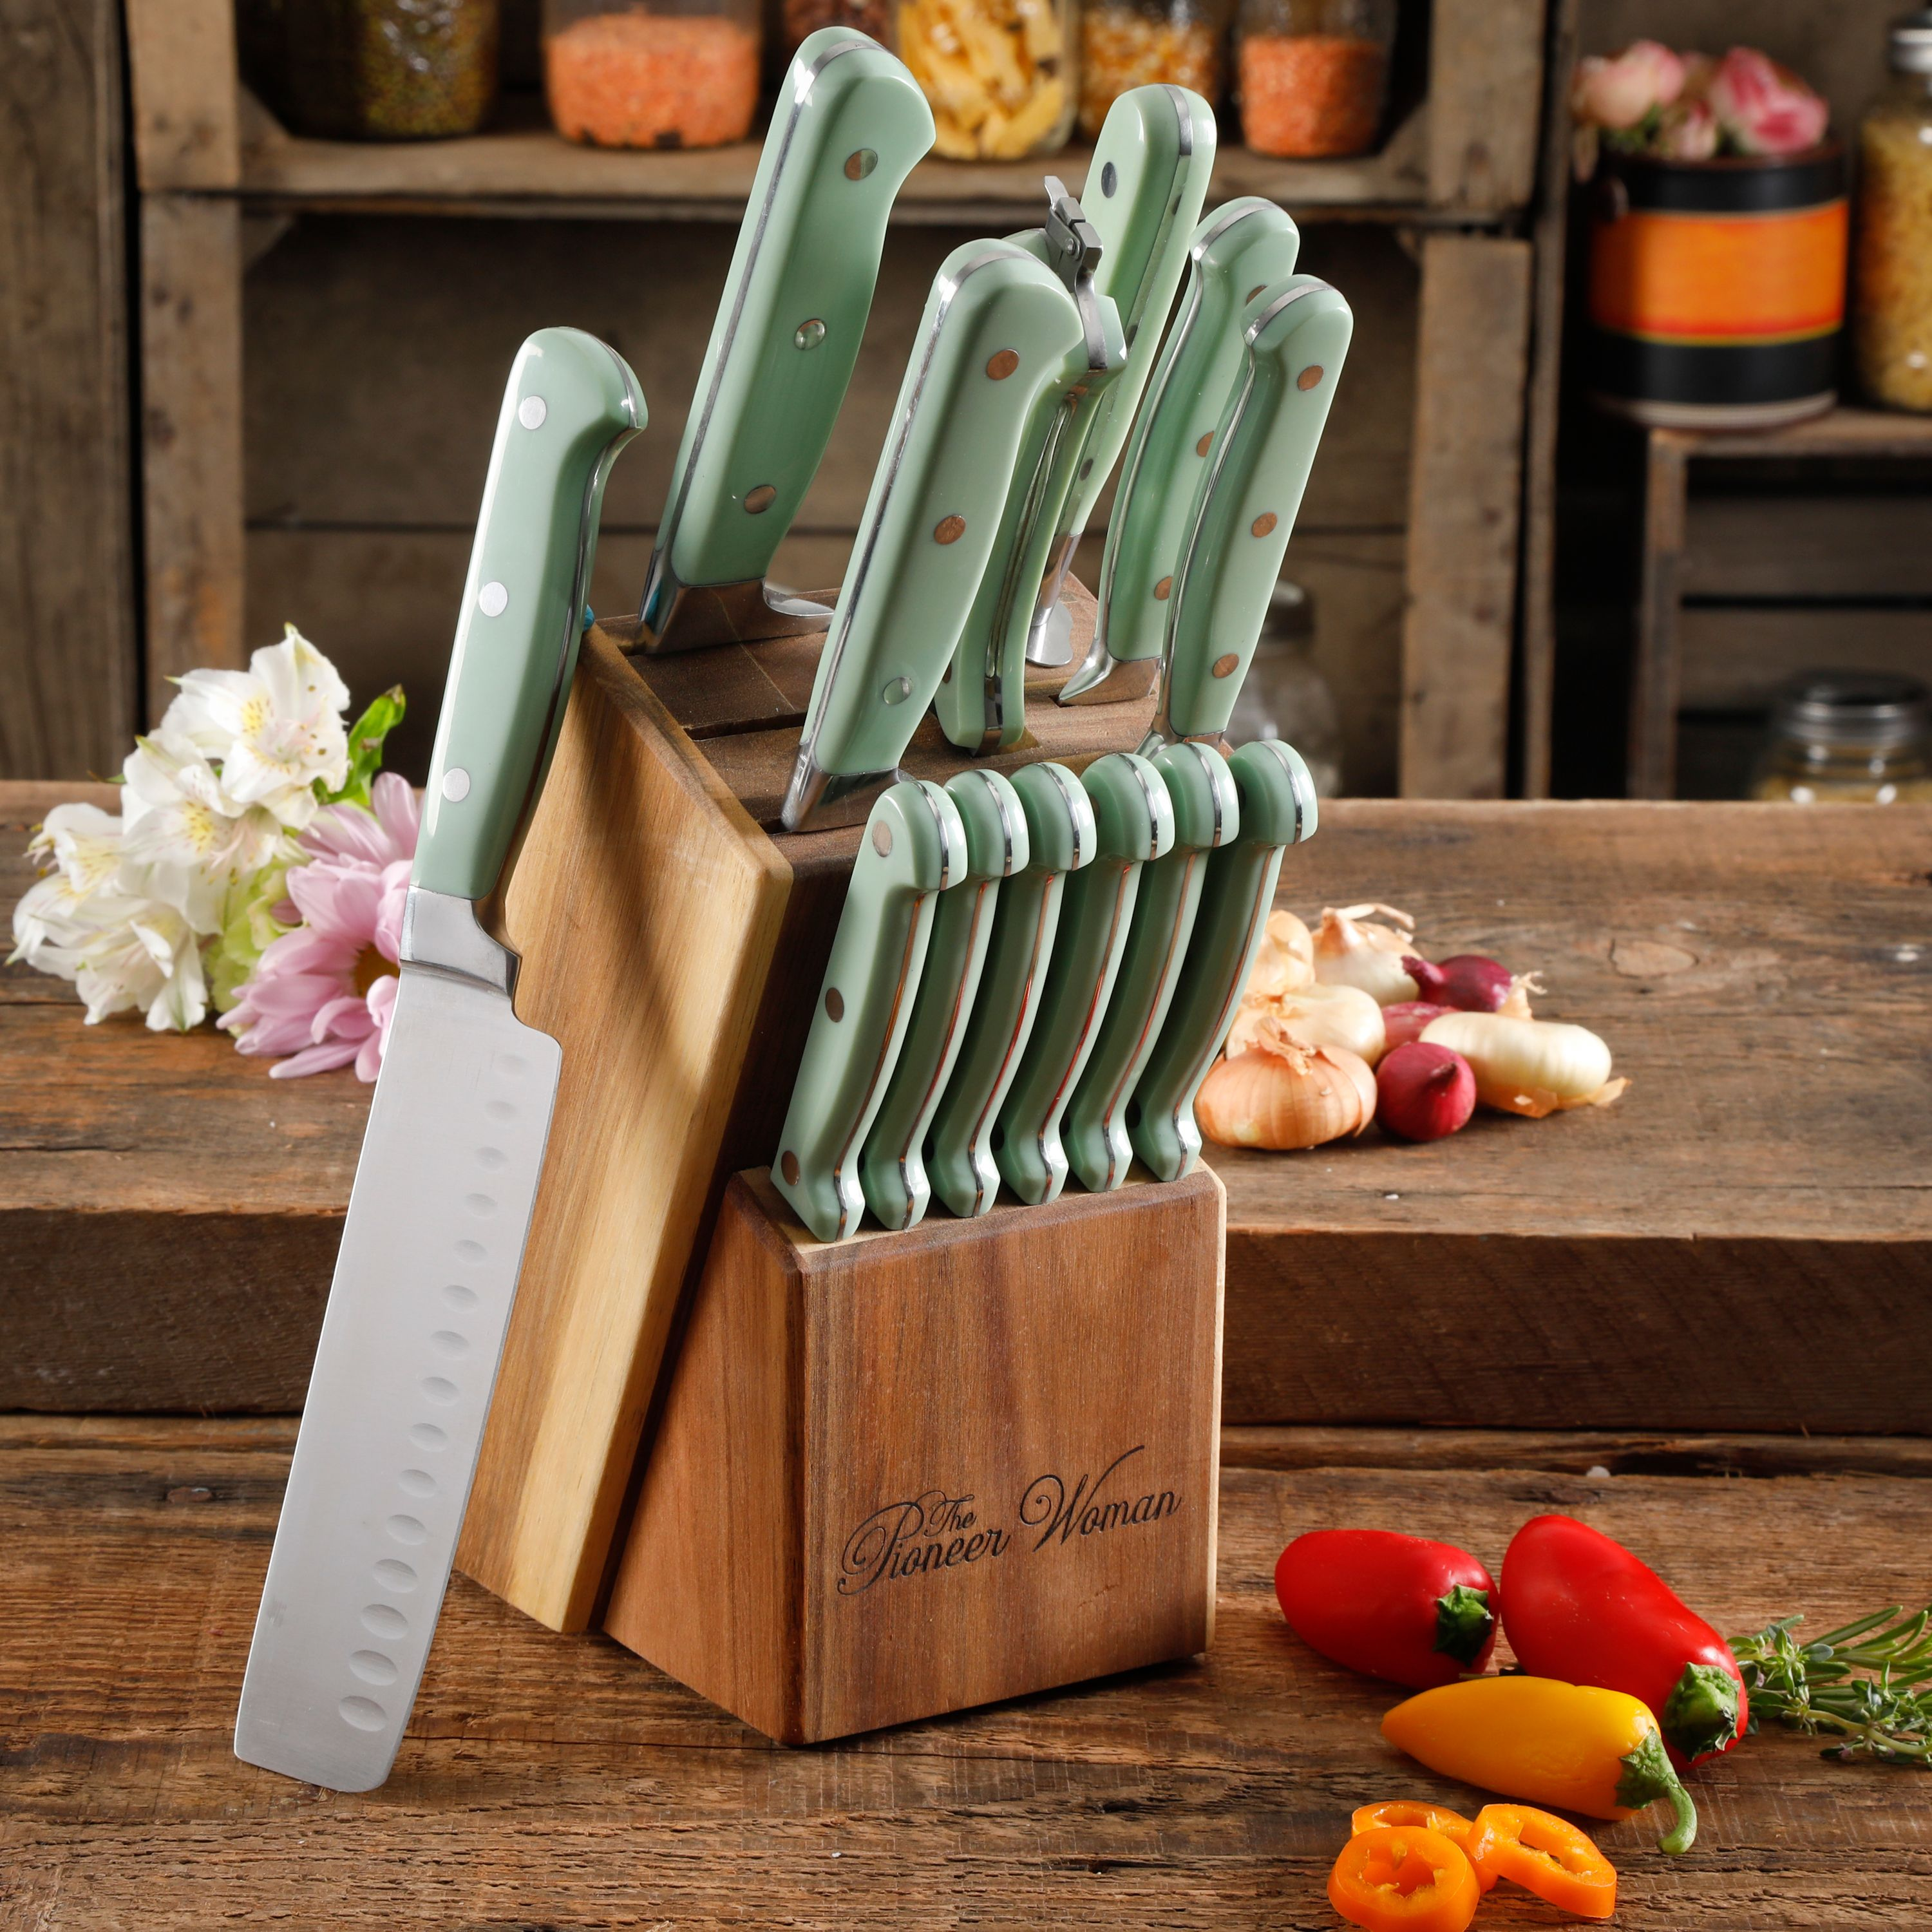 The pioneer woman cowboy rustic mint 14-piece cutlery set